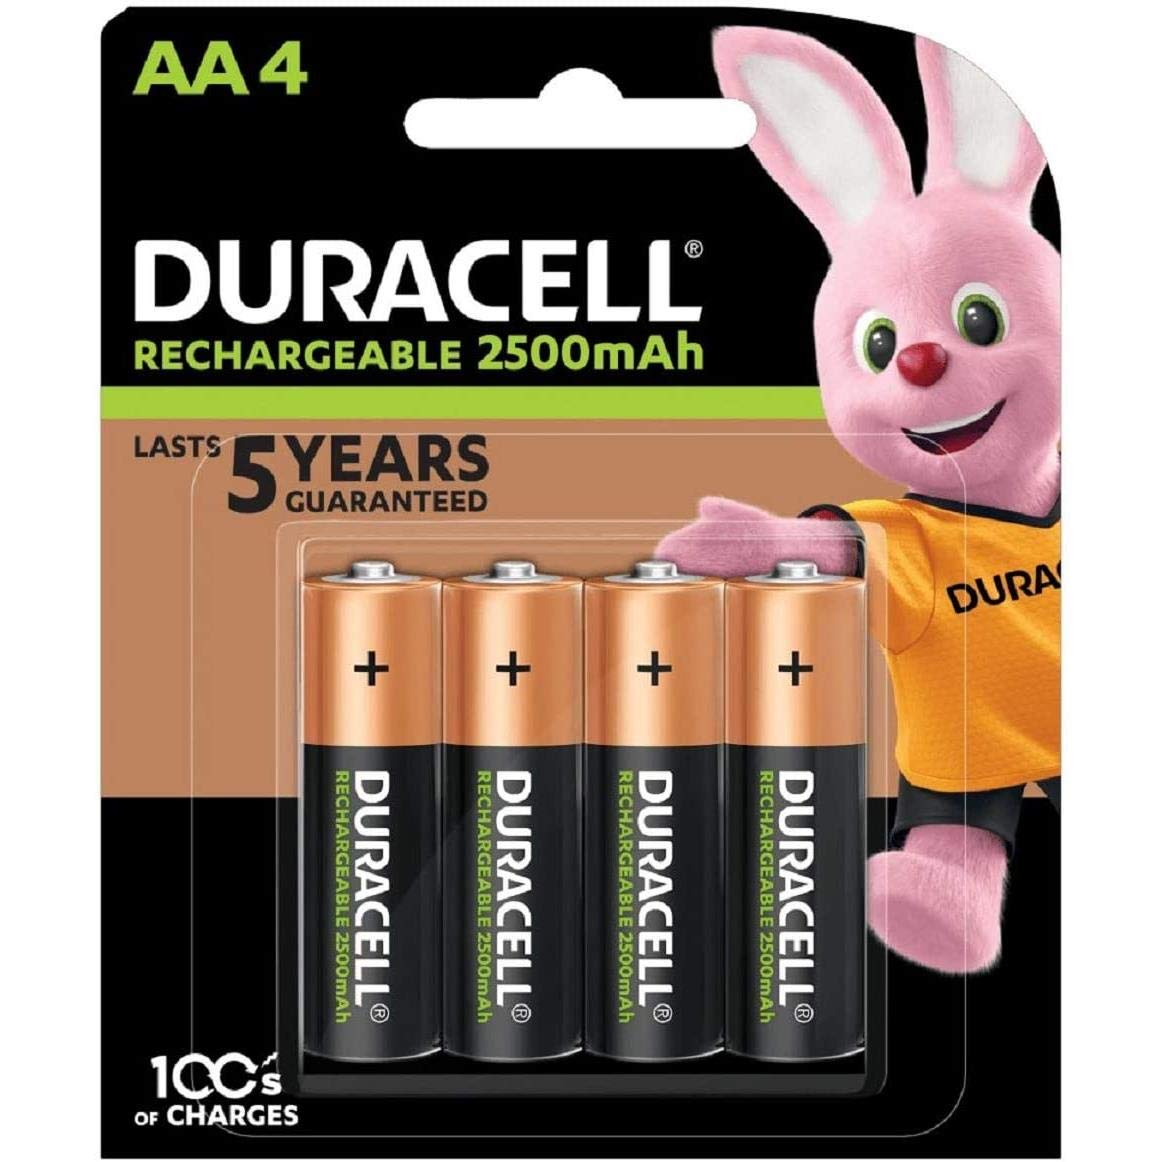 40x Duracell Ultra AA Double A 2500mAh Rechargeable Battery Batteries 81535767